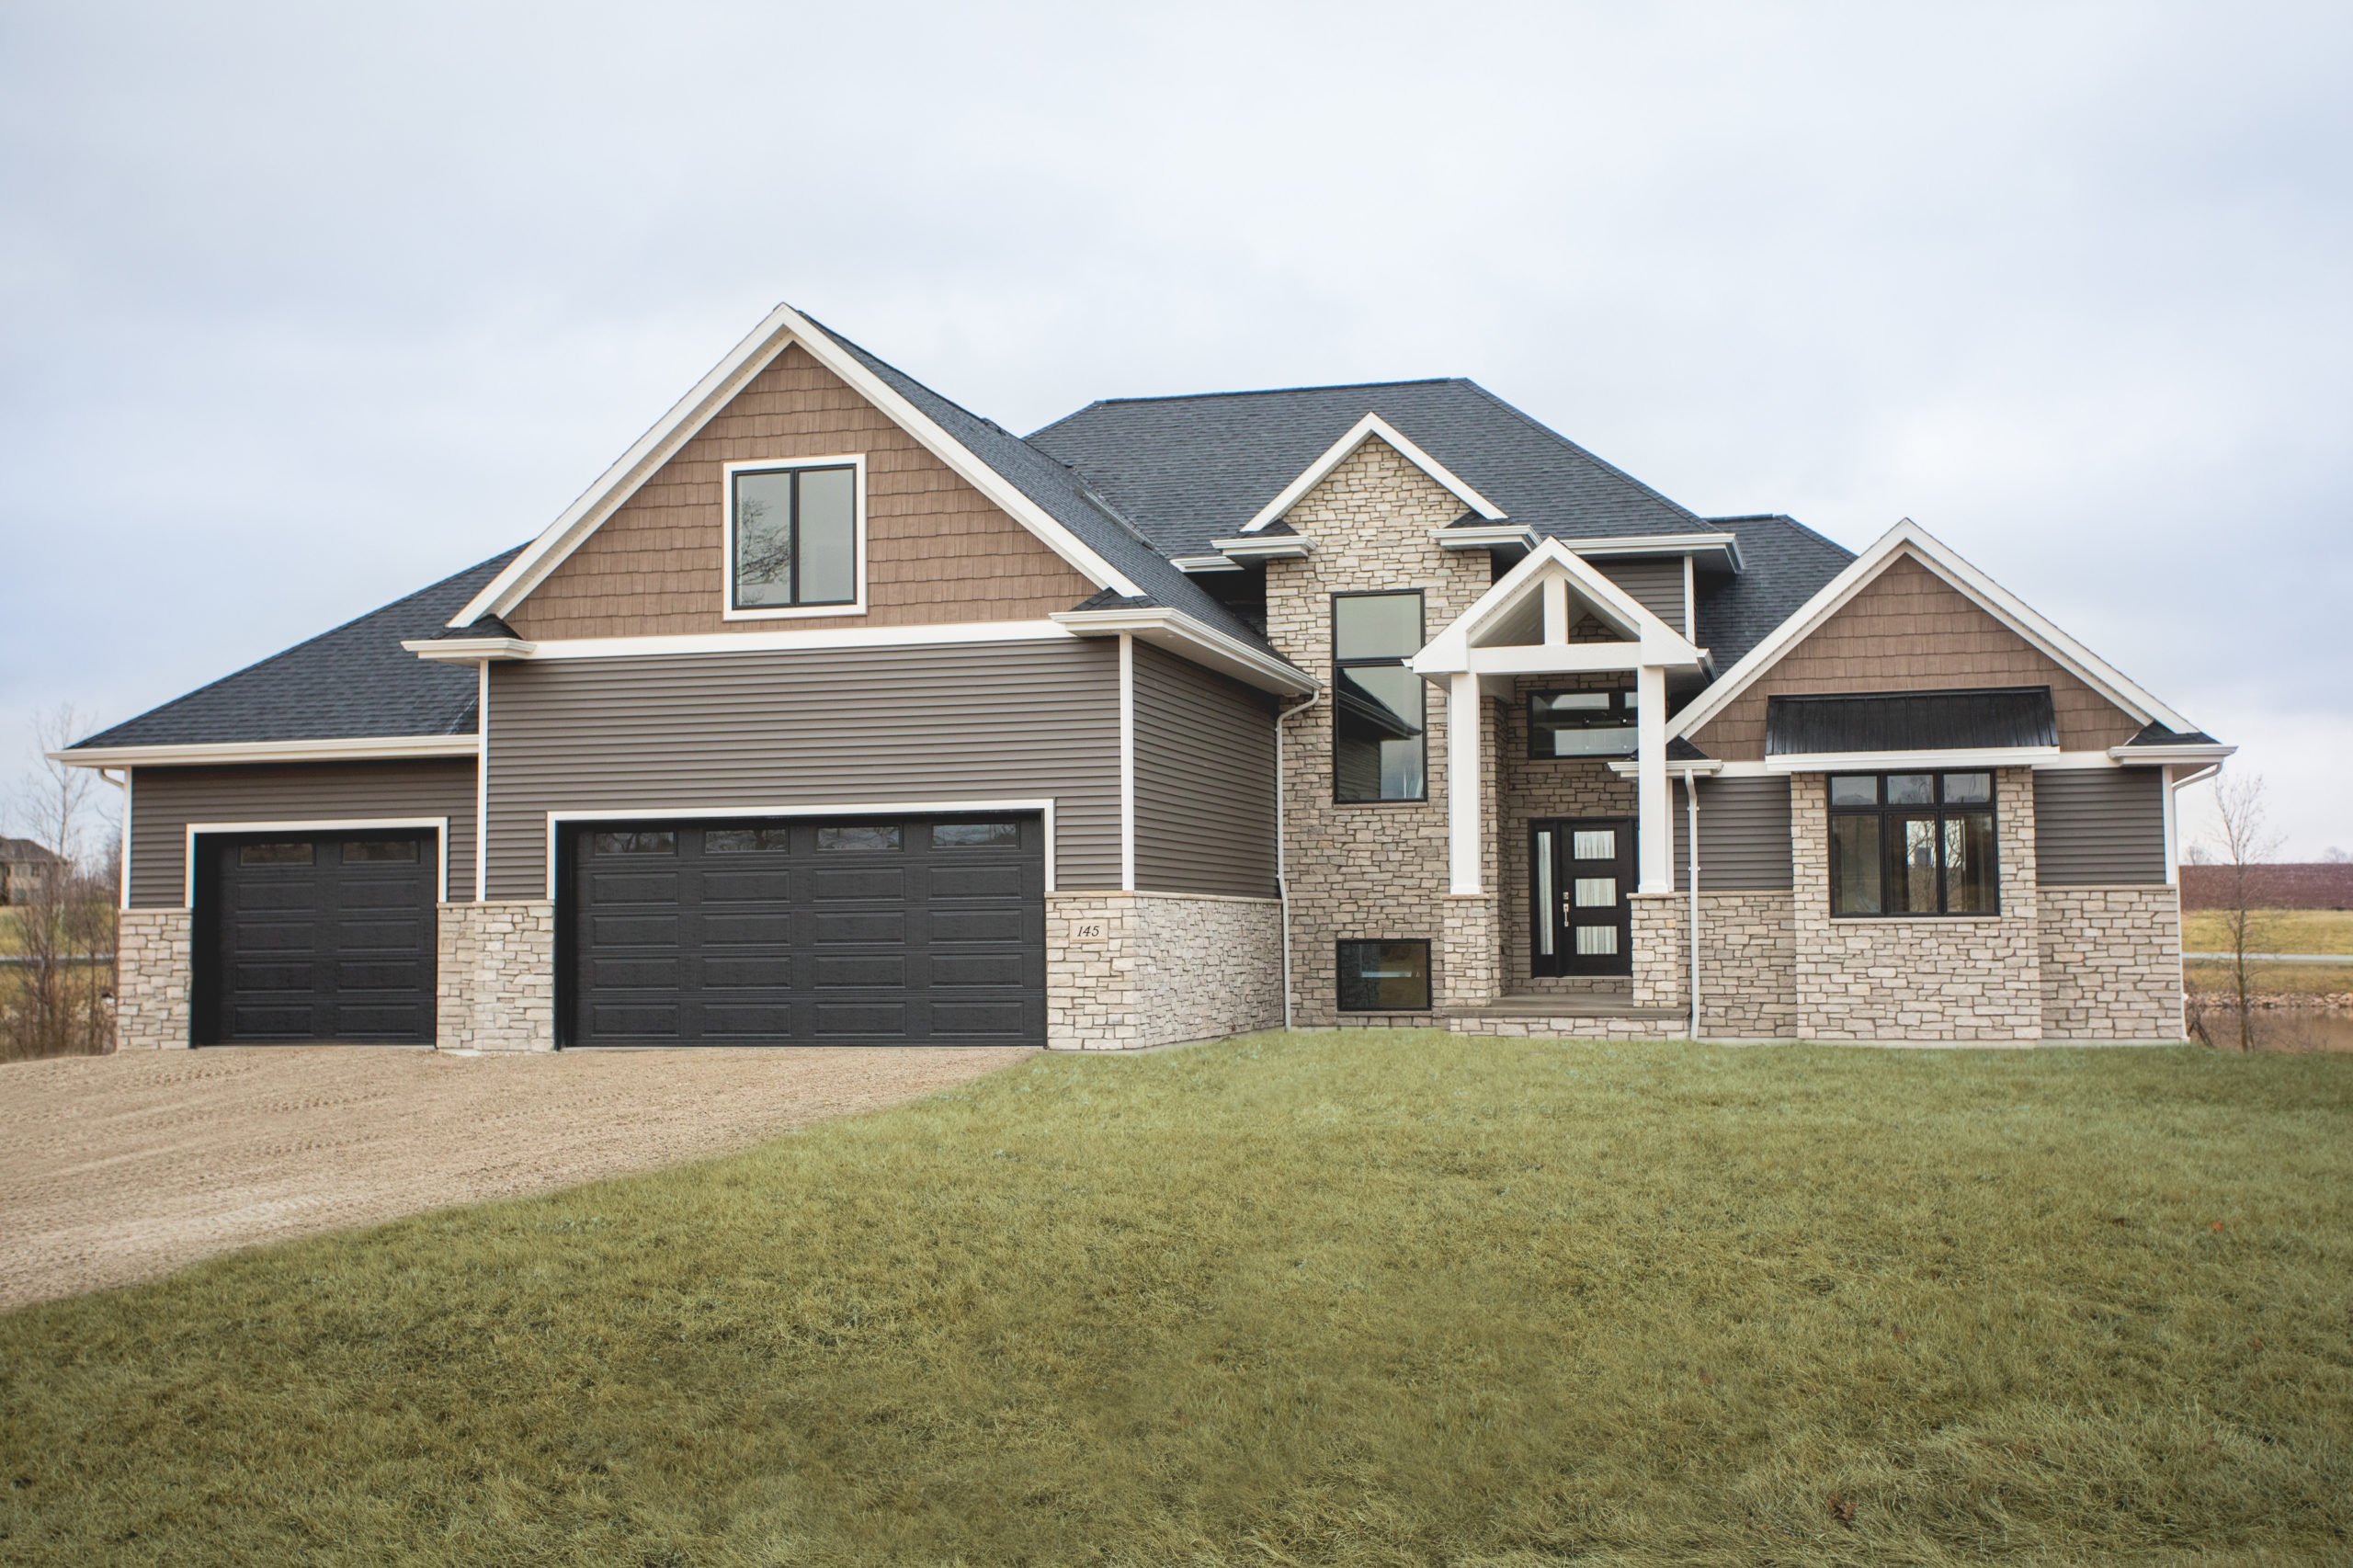 Front exterior view of The Mauermann custom home in Green Bay, WI by LeMense Quality Homes, Inc.